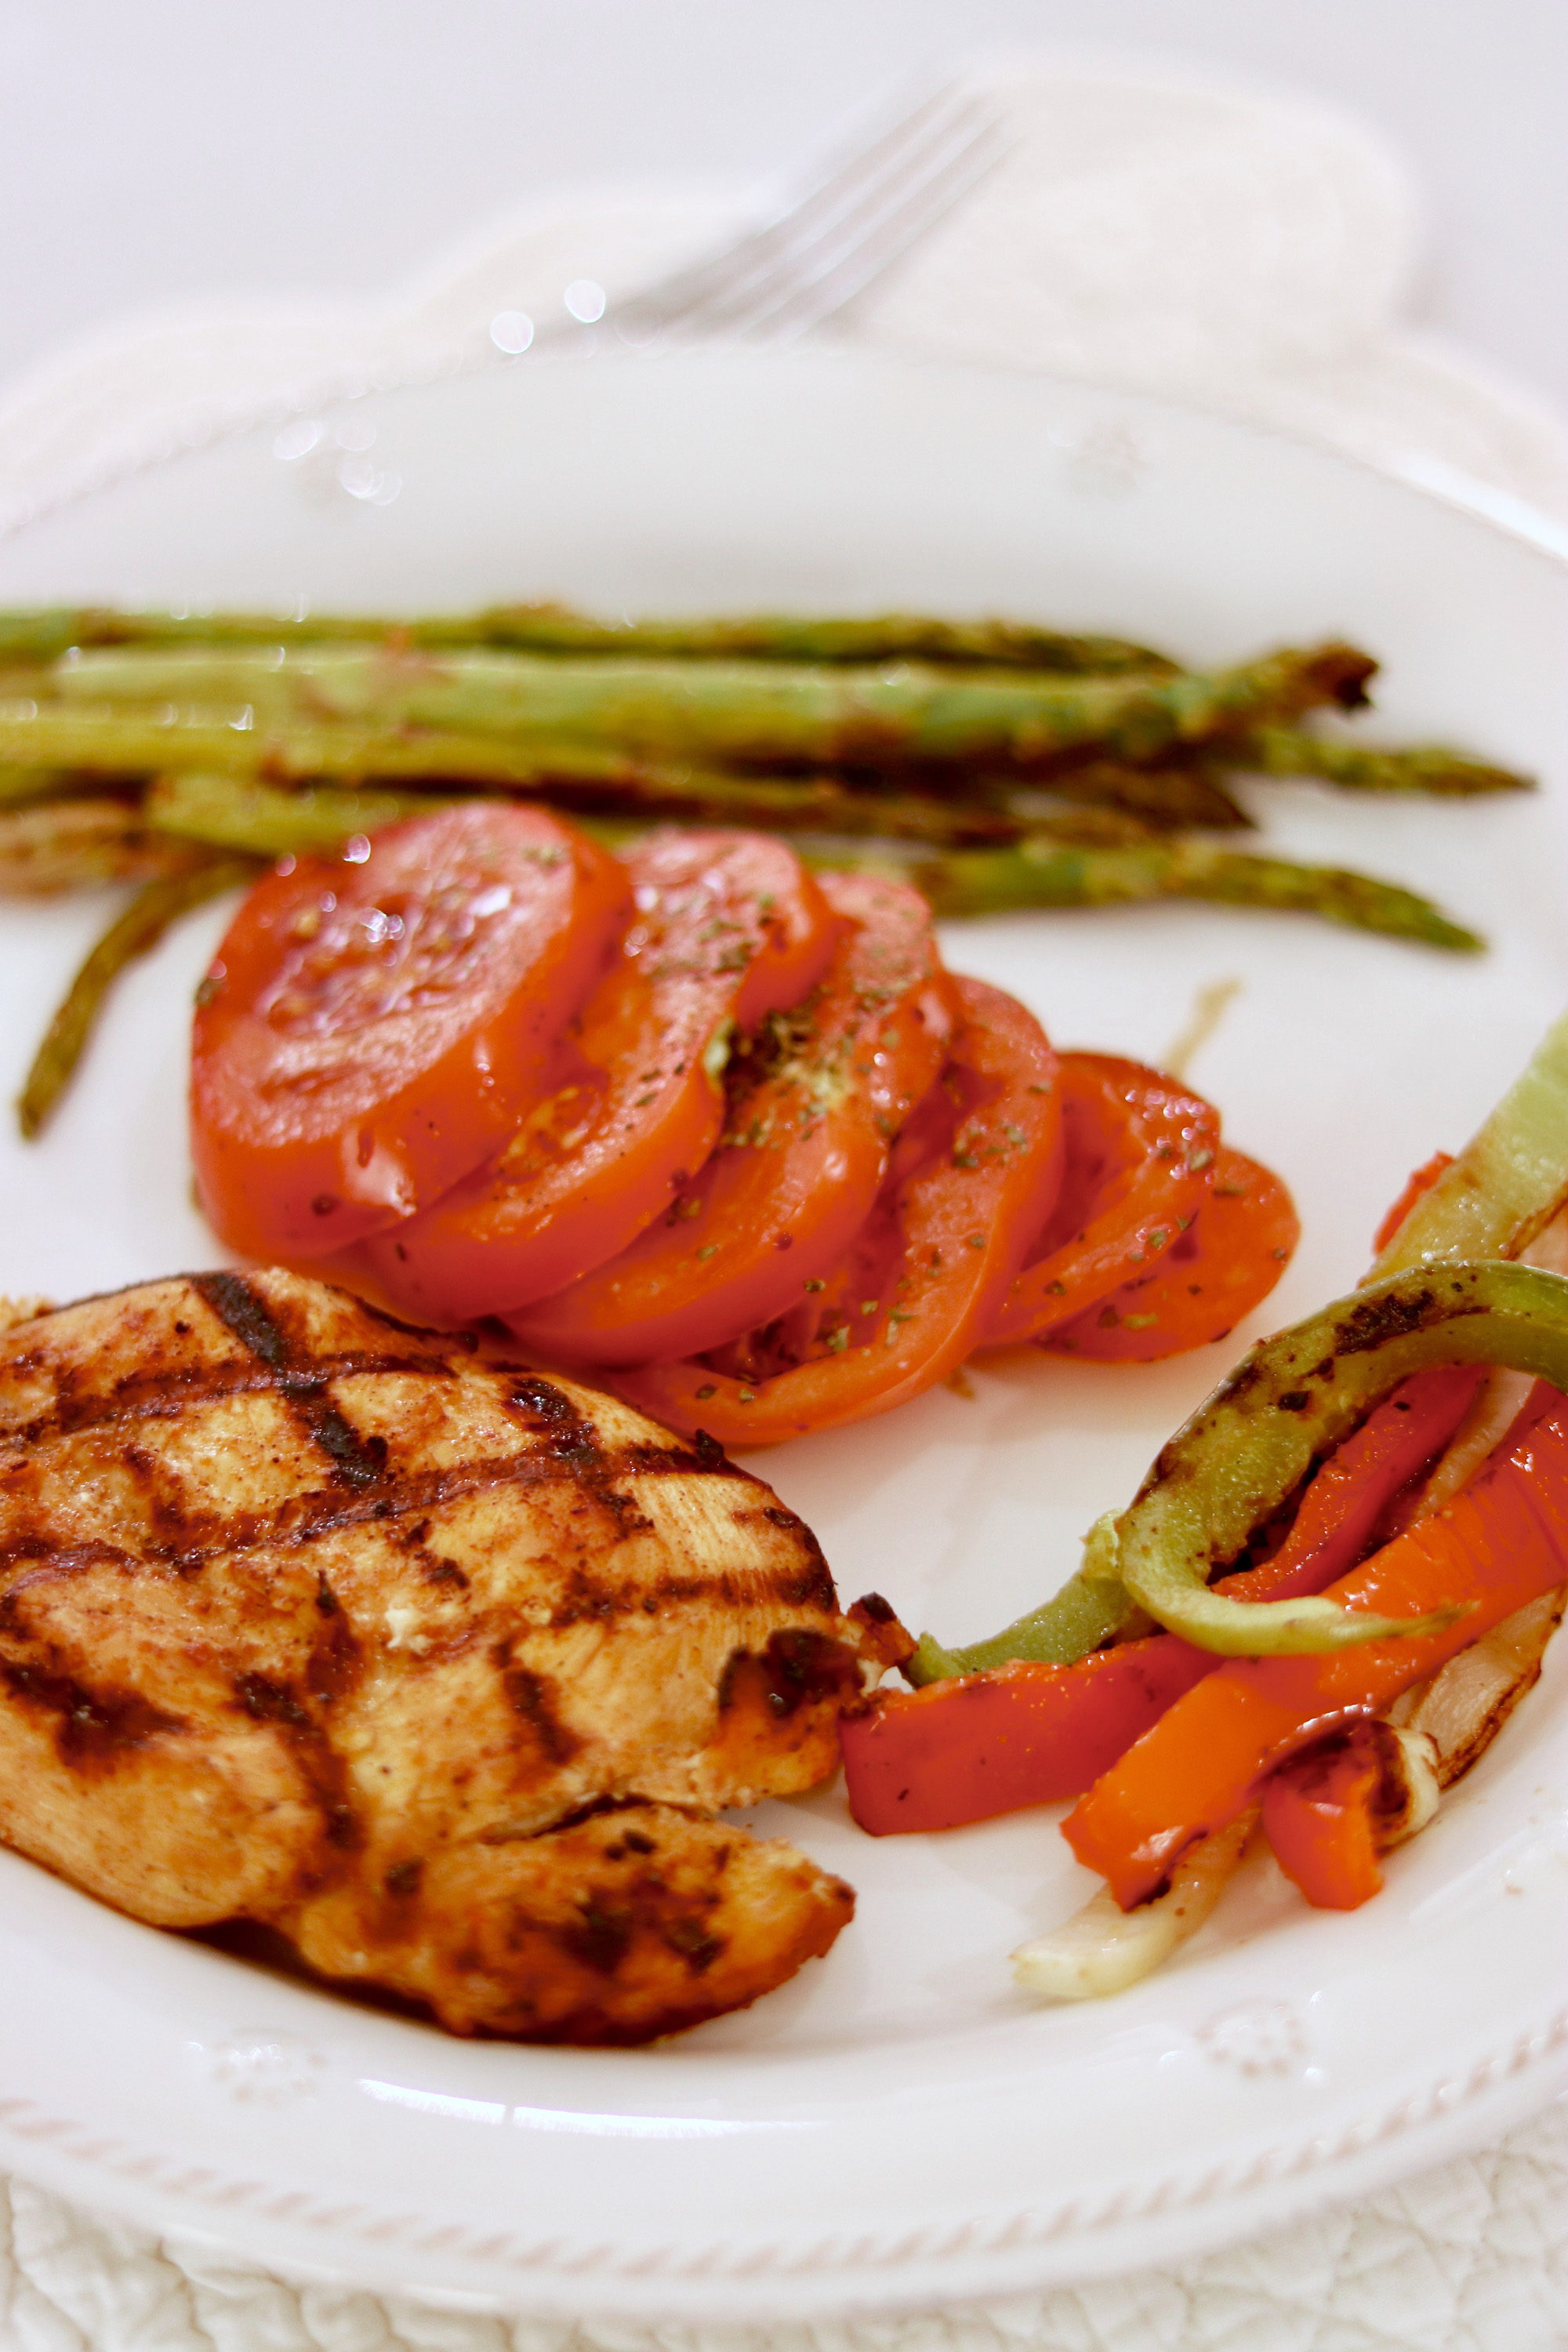 Jeff's Grilled Chili Lime Chicken